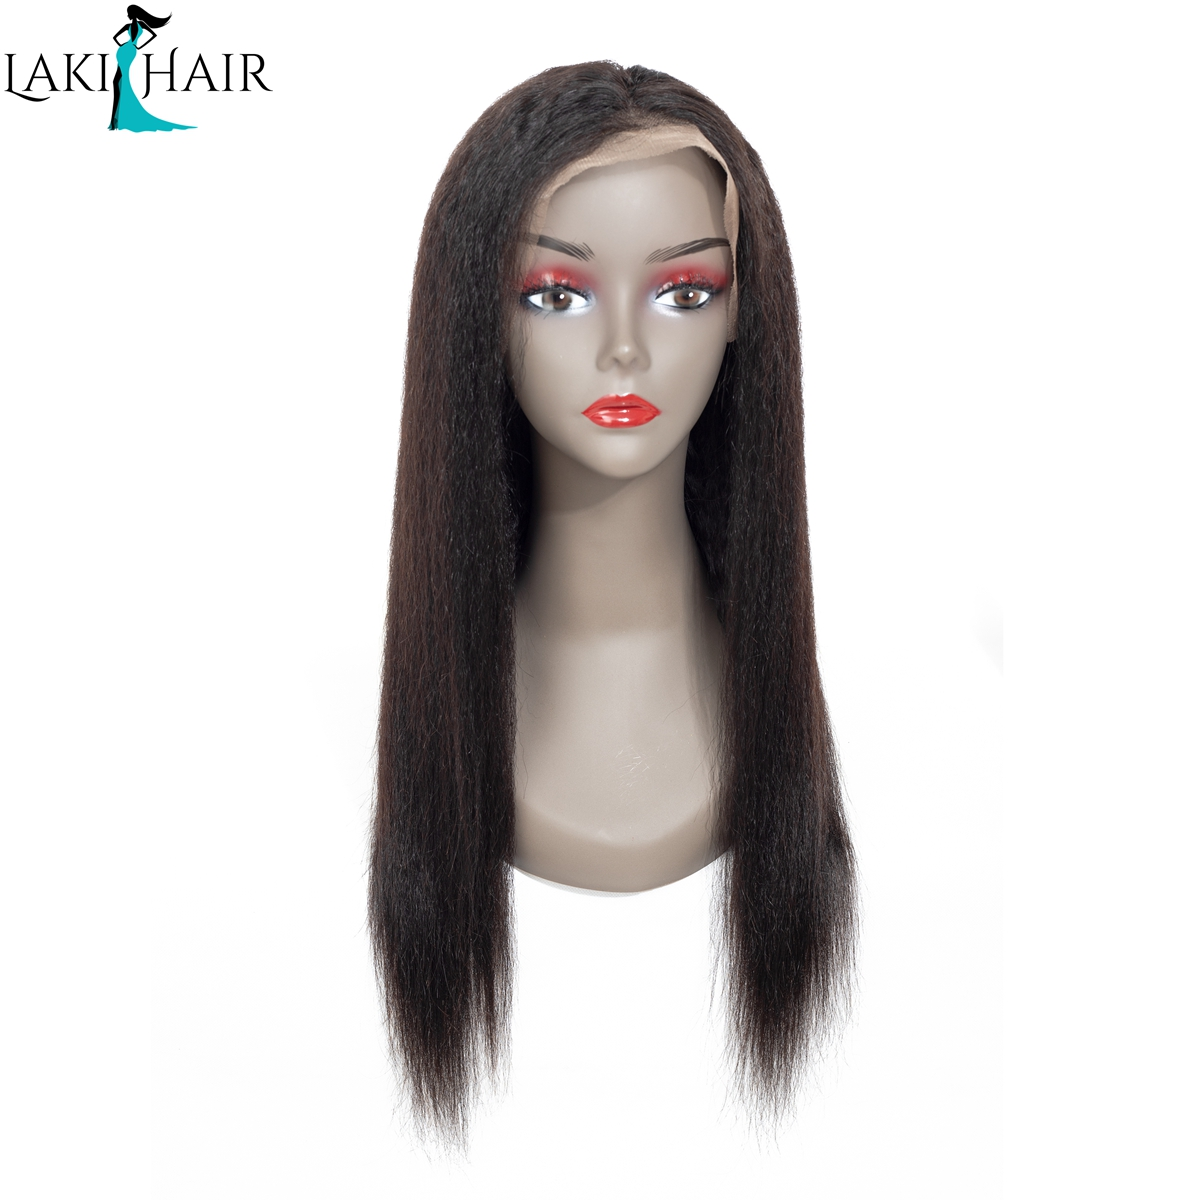 Kinky Straight Wig Lace Front Human Hair Wigs For Black Women Lakihair  Brazilian Remy Human Hair Front Lace Wigs With Baby Hair 1c1a675b8